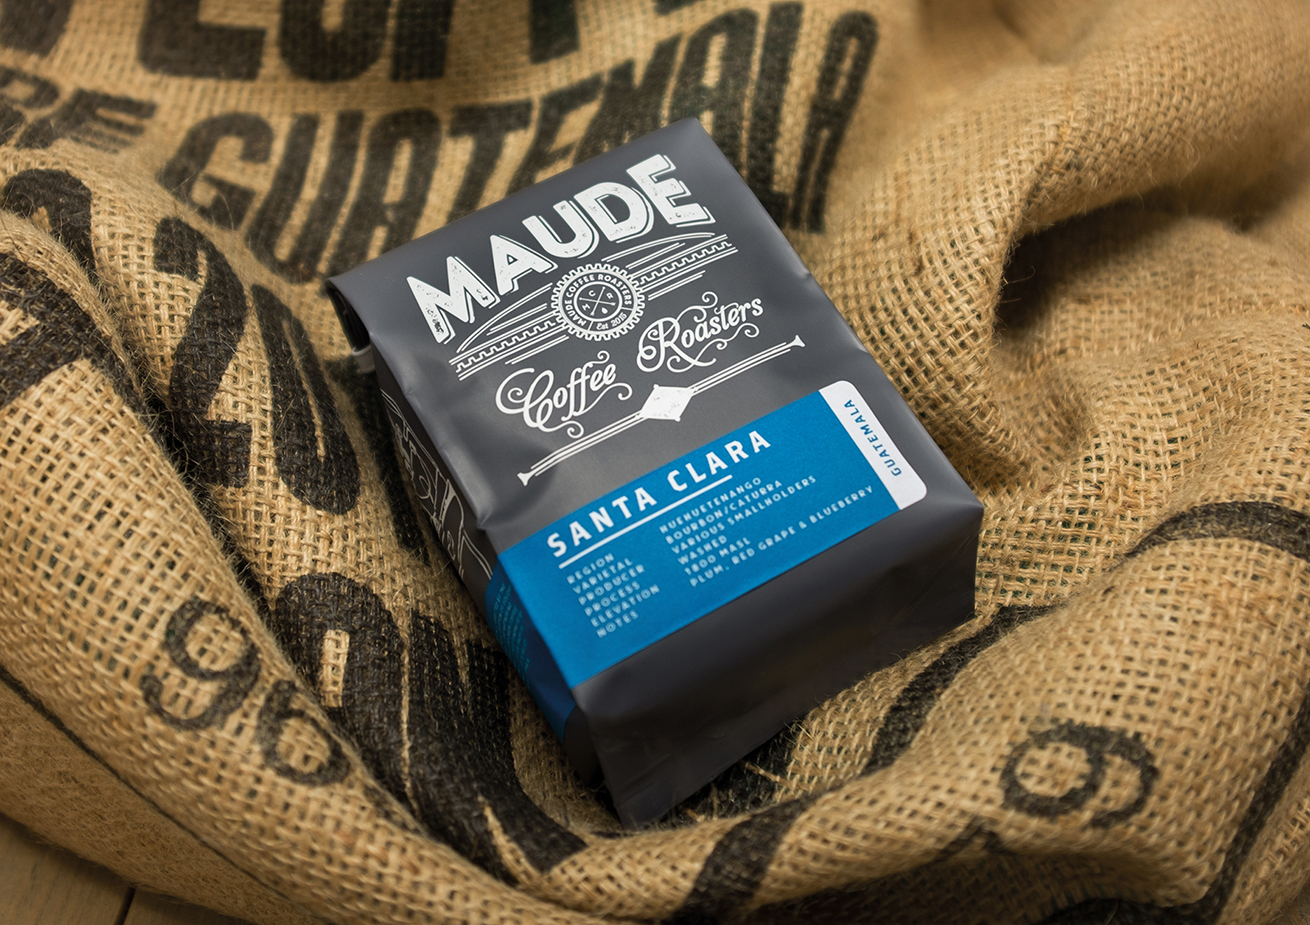 OurCreative. Maude Coffee Roasters